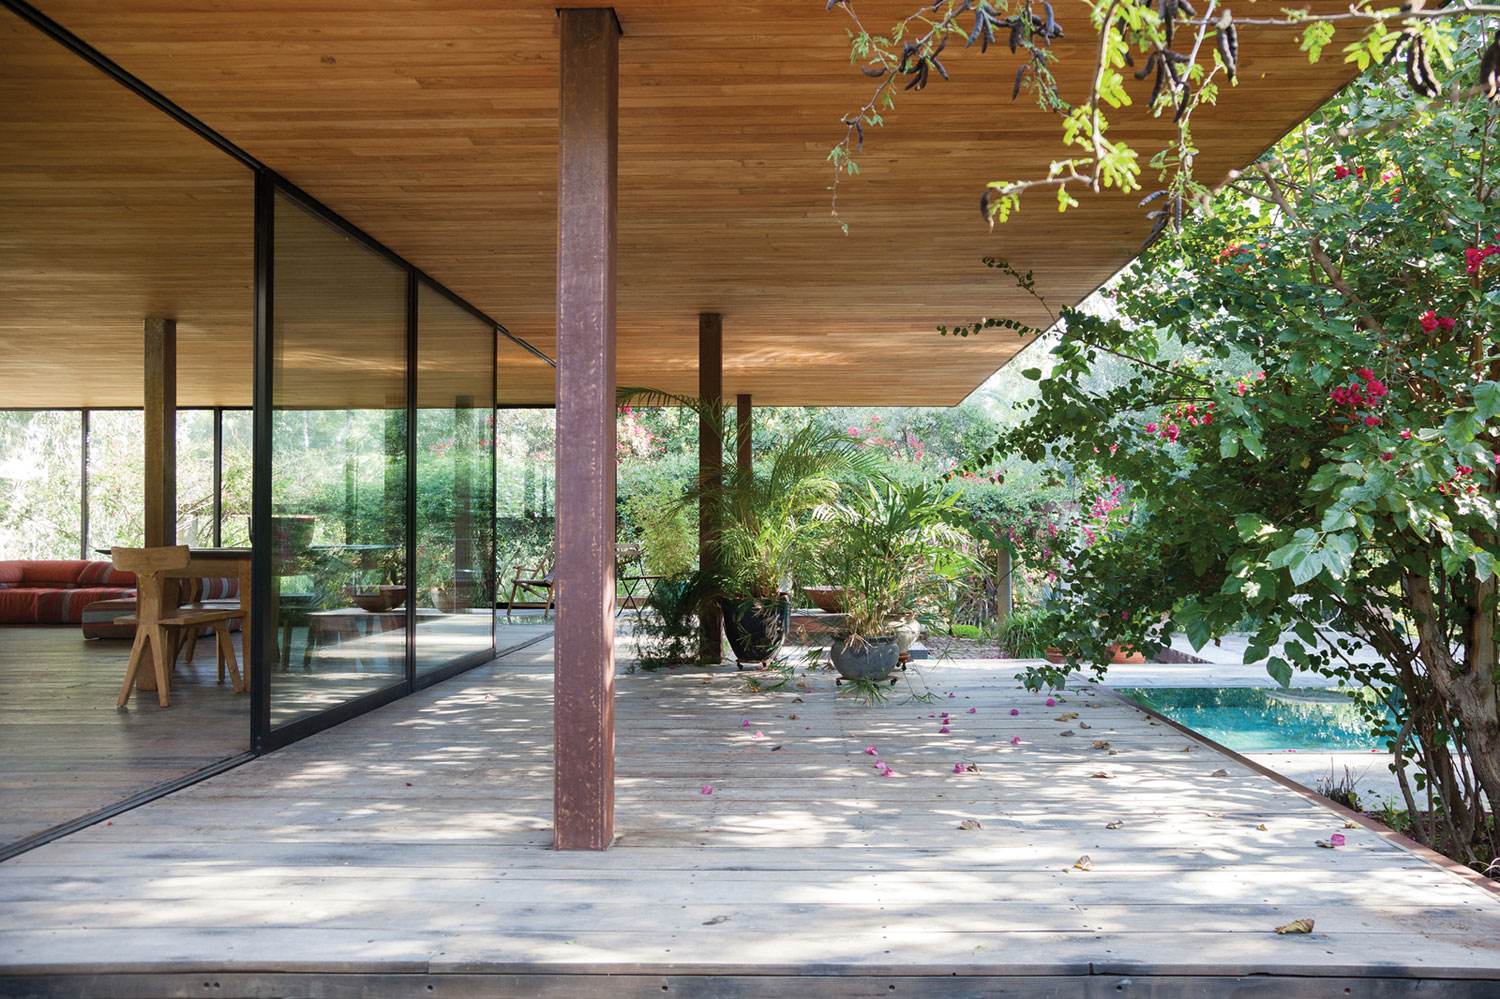 Pavilion at Architect's Residence in Nicosia by Kythreotis Architects-07